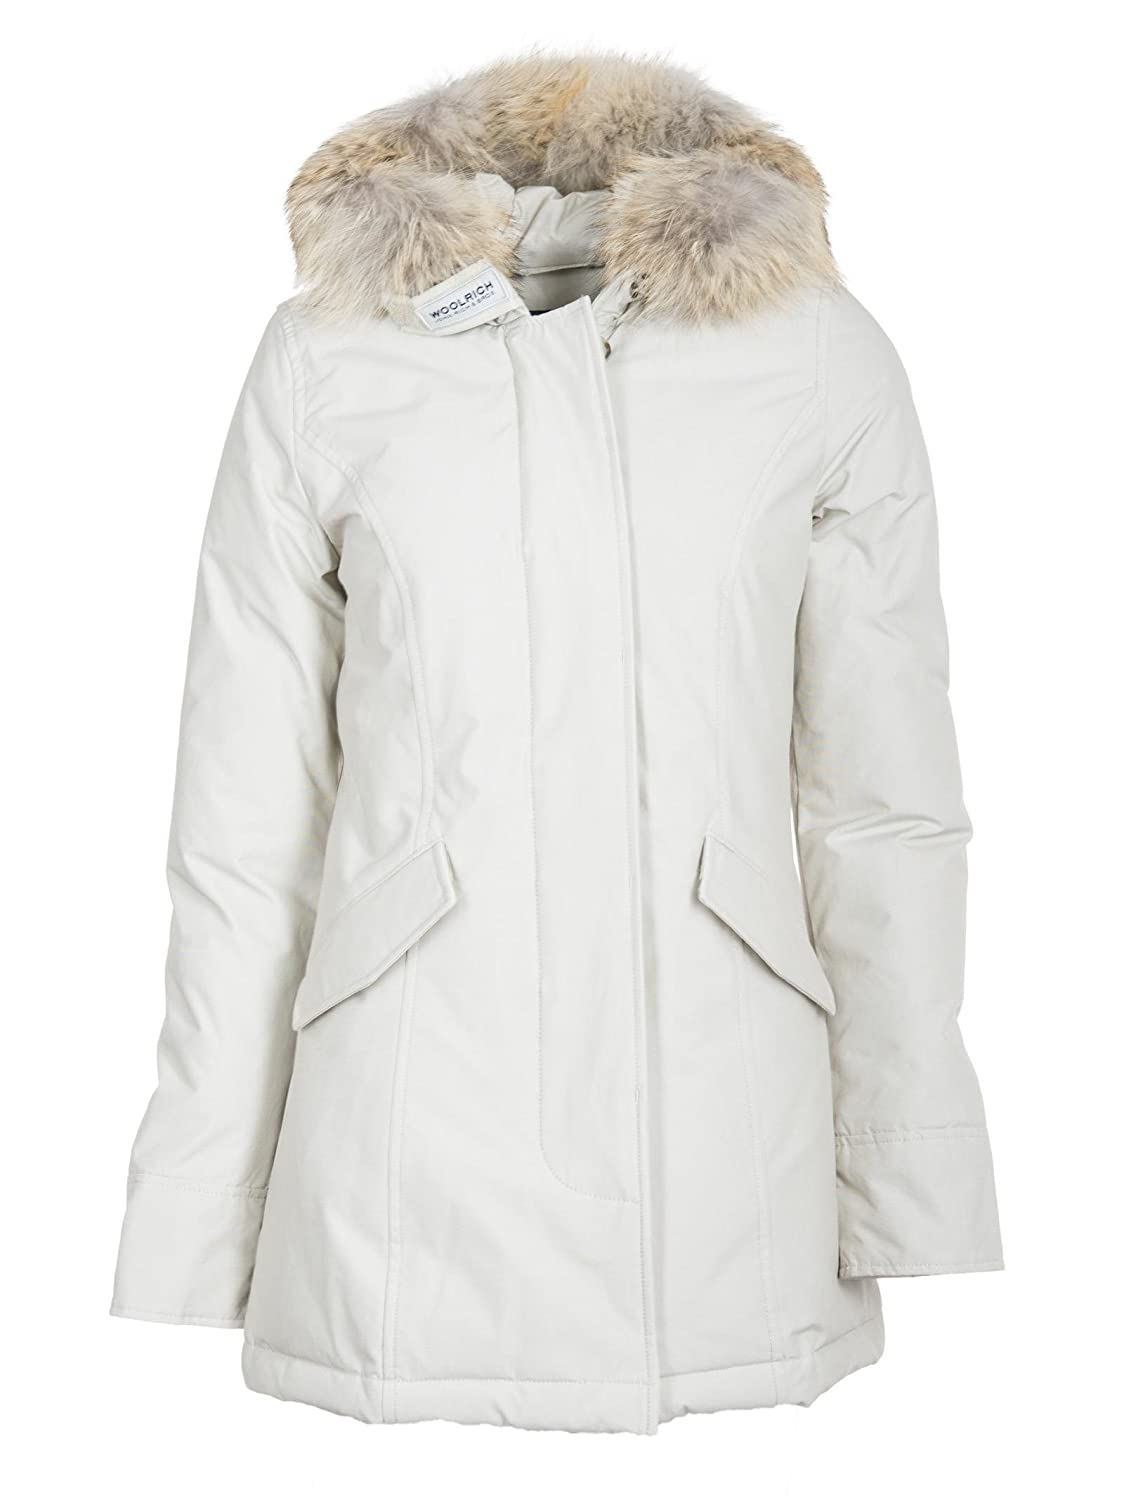 Woolrich - Chaqueta - para Mujer White Igloo X-Small: Amazon ...